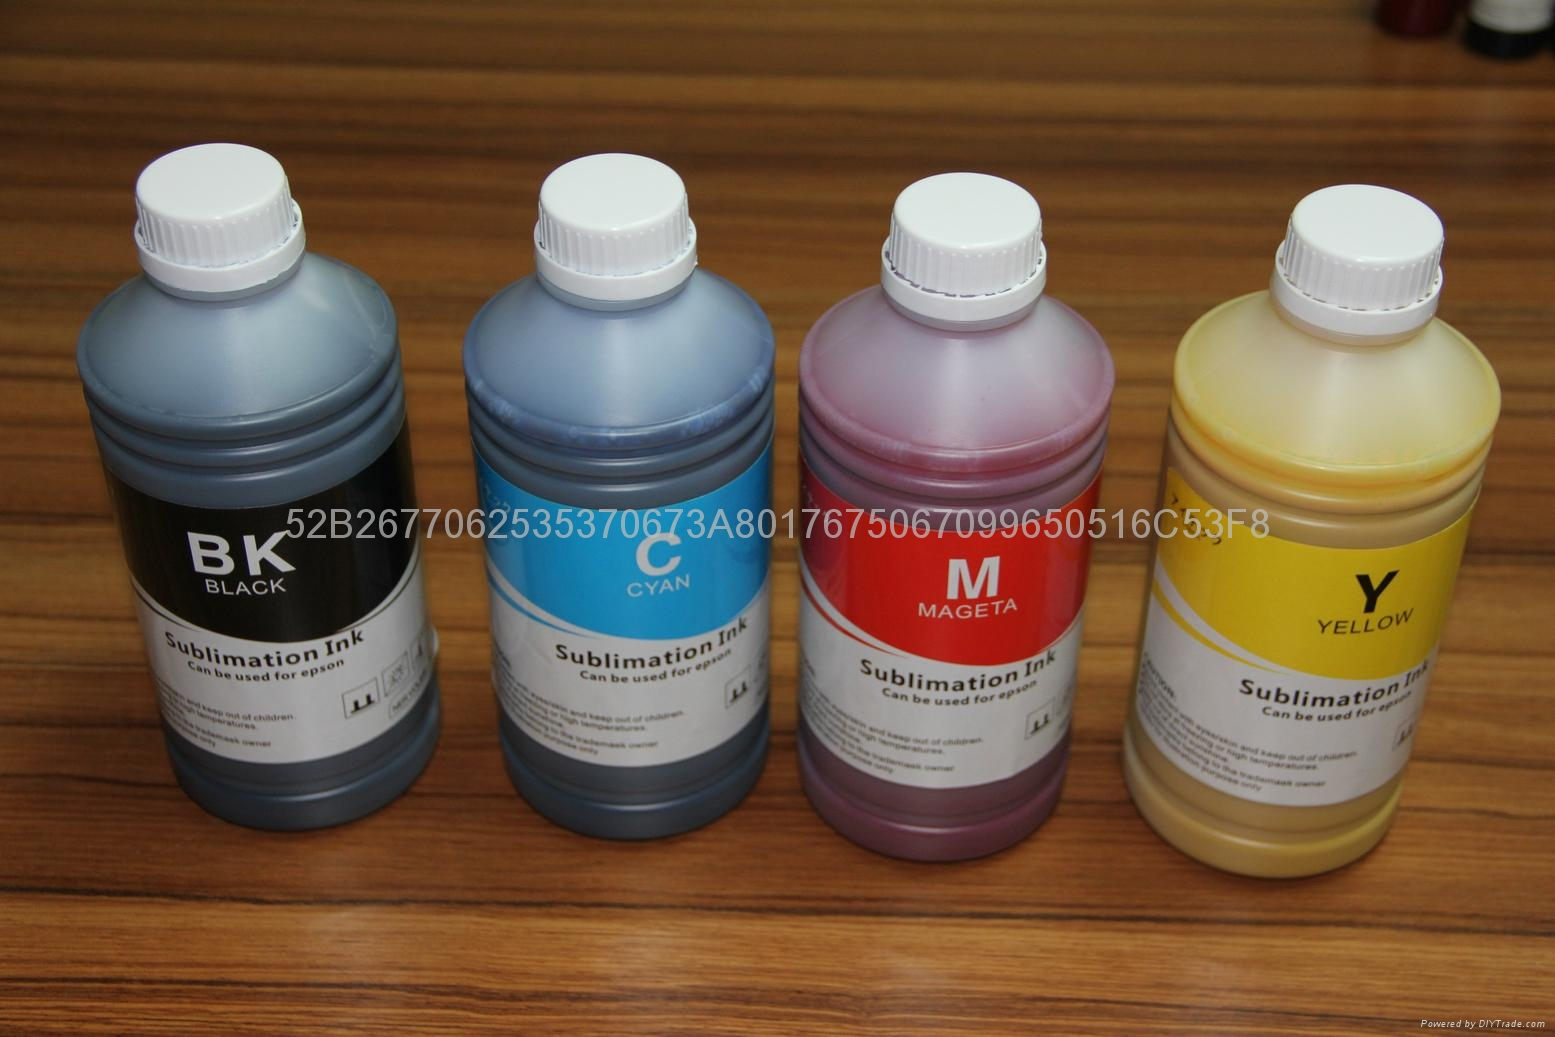 Hot sale sublimation ink for epson 7700 7800 7880 3070 5